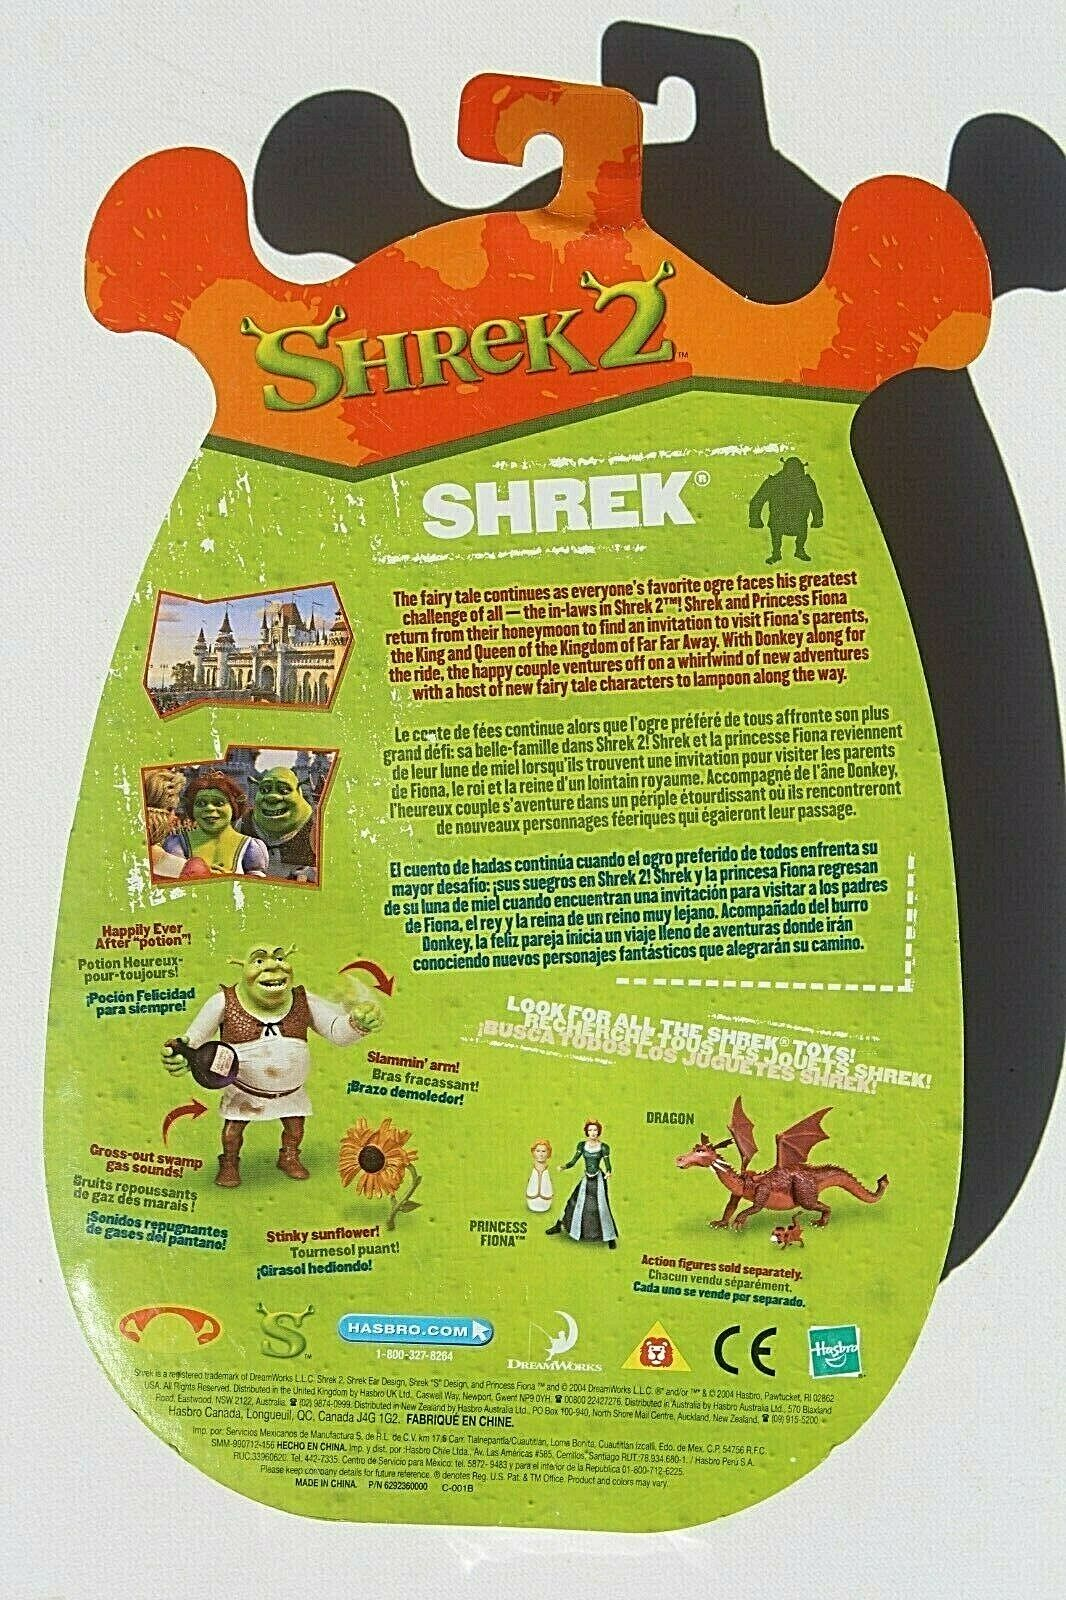 2004 Shrek 2 Stinky Sunflower Happily Ever After Potion Action Figure For Sale Online Ebay